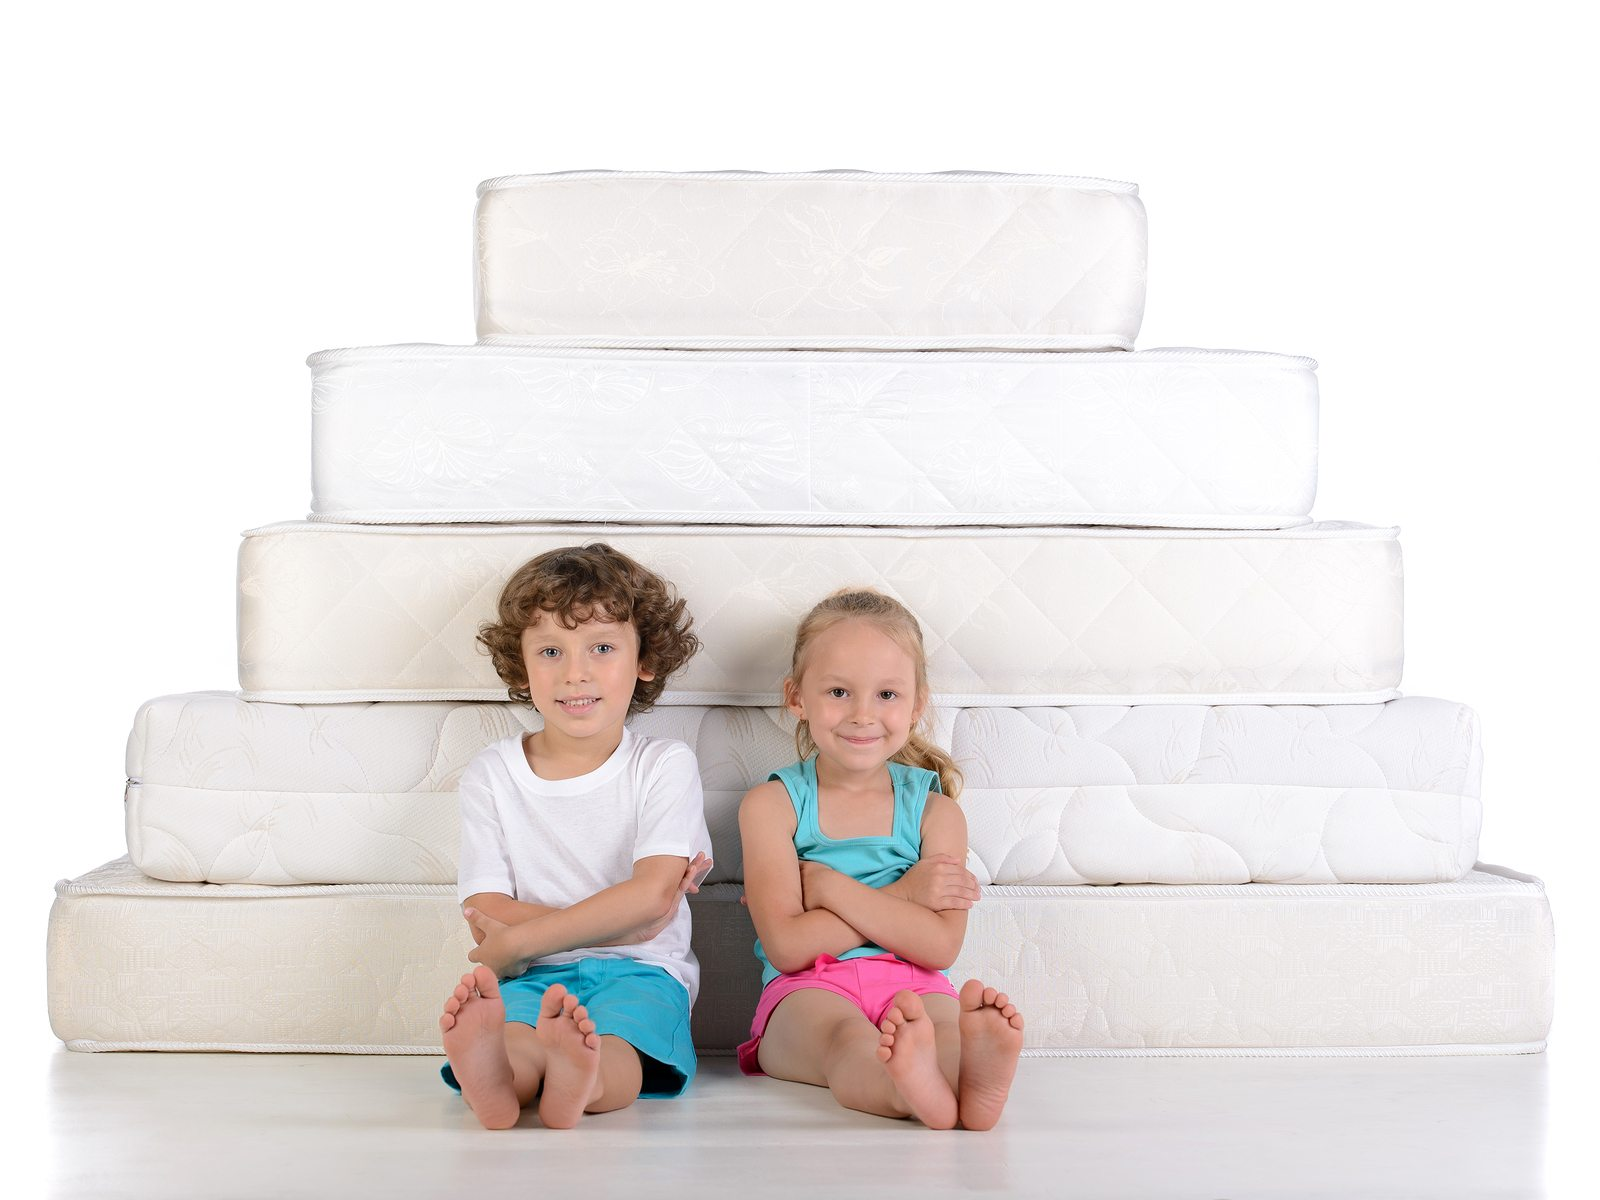 Best Mattress For Kids Our Top Five Picks For 2019